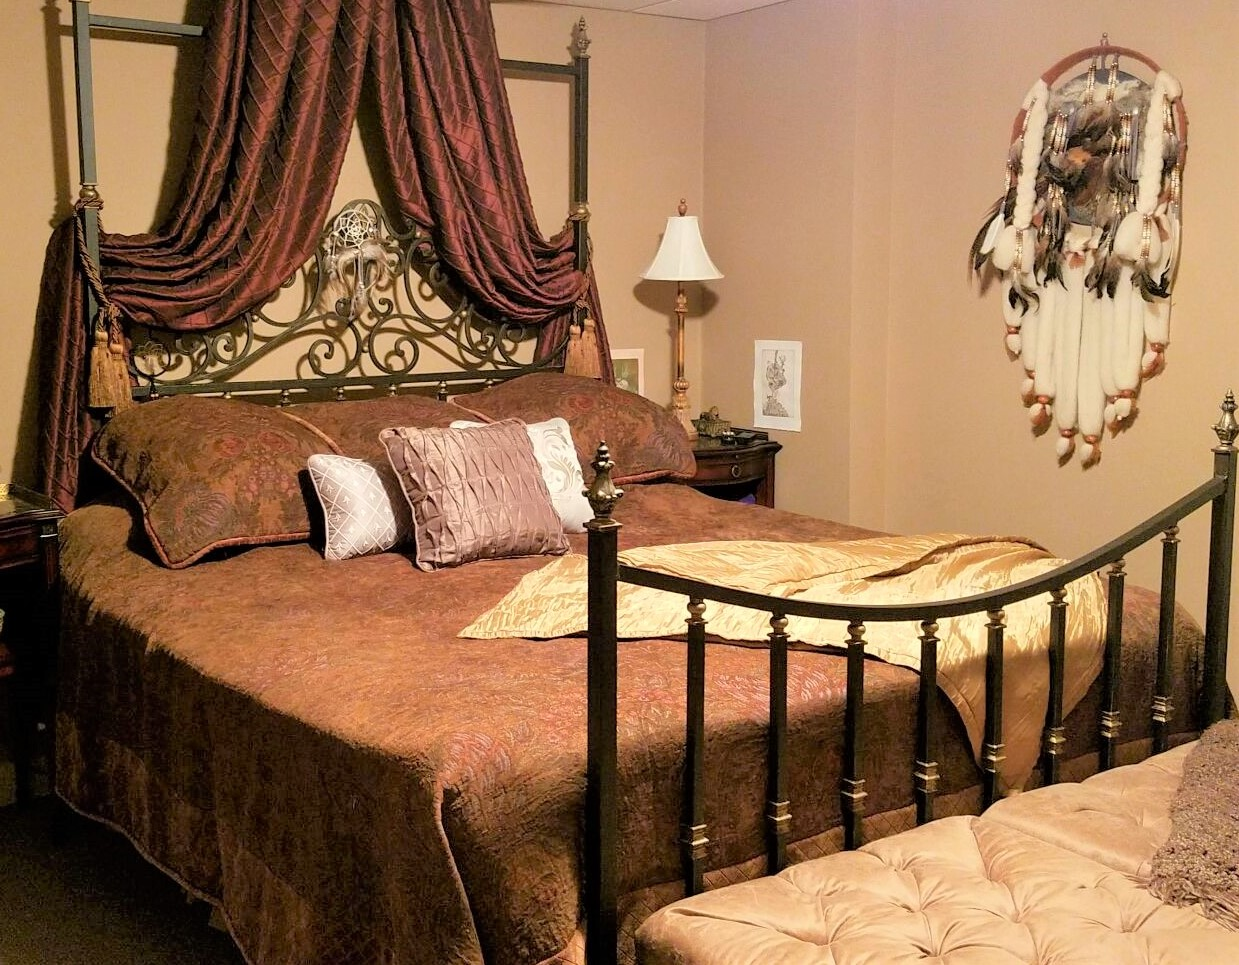 Convert A Queen Size Bed To King, Queen To King Bed Frame Conversion Kit